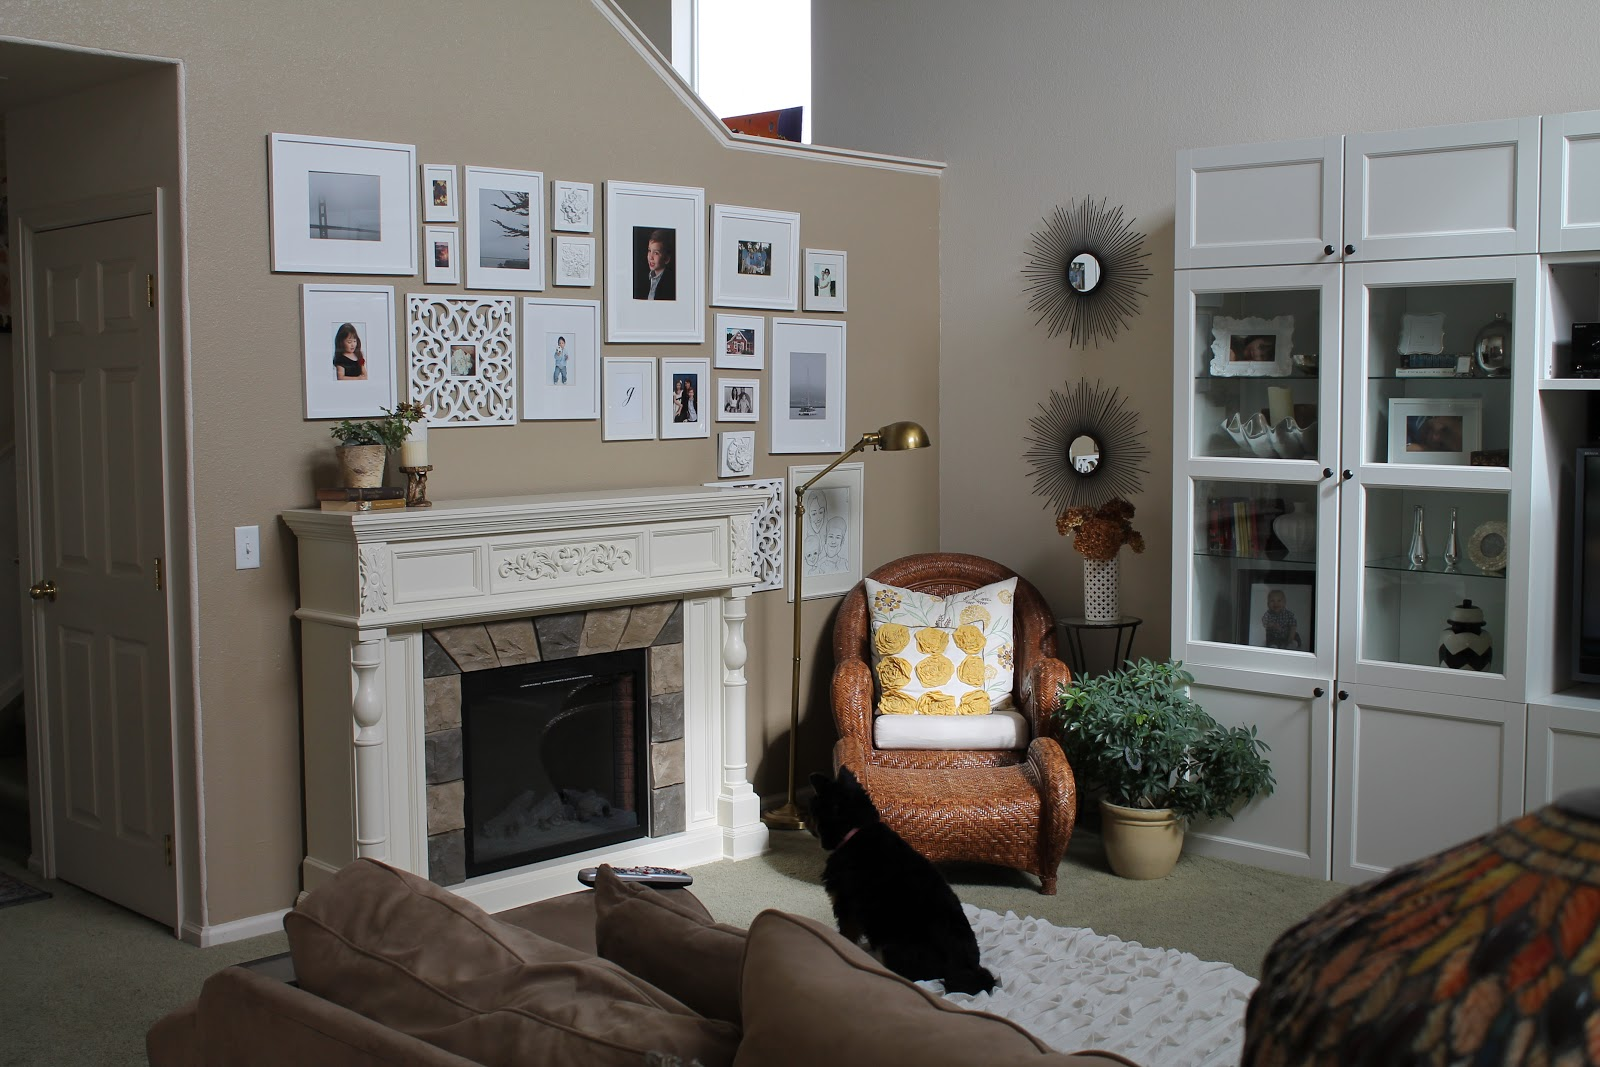 On prairie hill: Our new electric fireplace from.....Big lots?